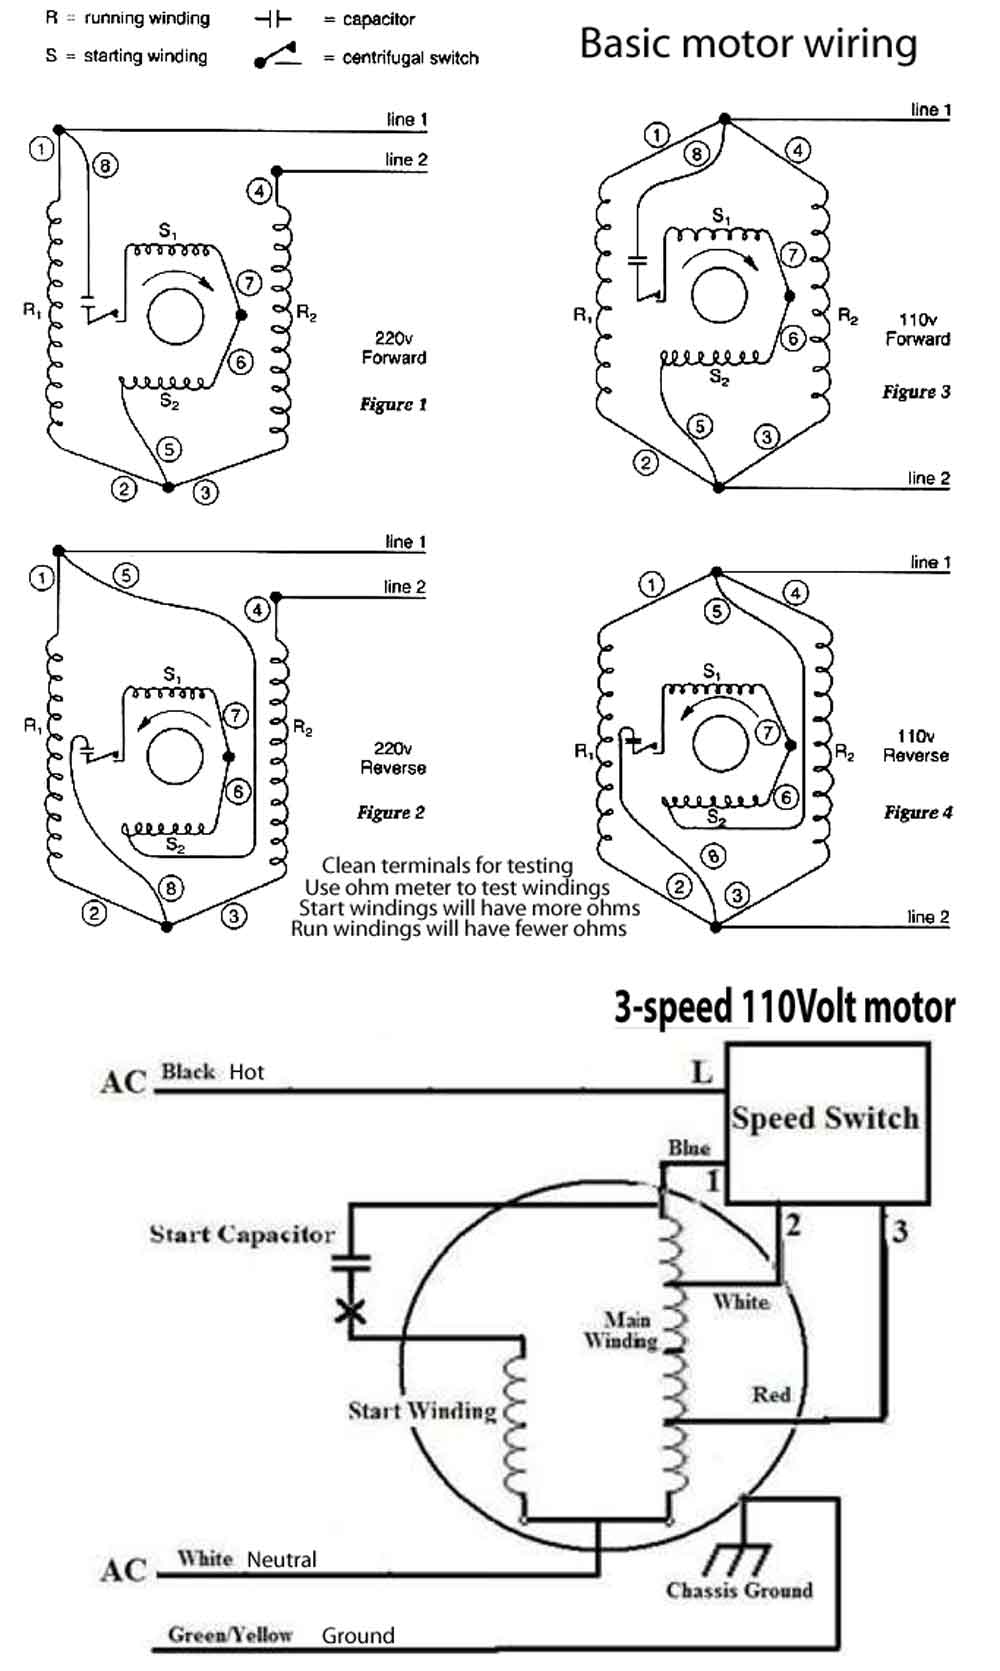 Motor wiring 500 how to wire 3 speed fan switch holmes blizzard table fan wiring diagram at pacquiaovsvargaslive.co